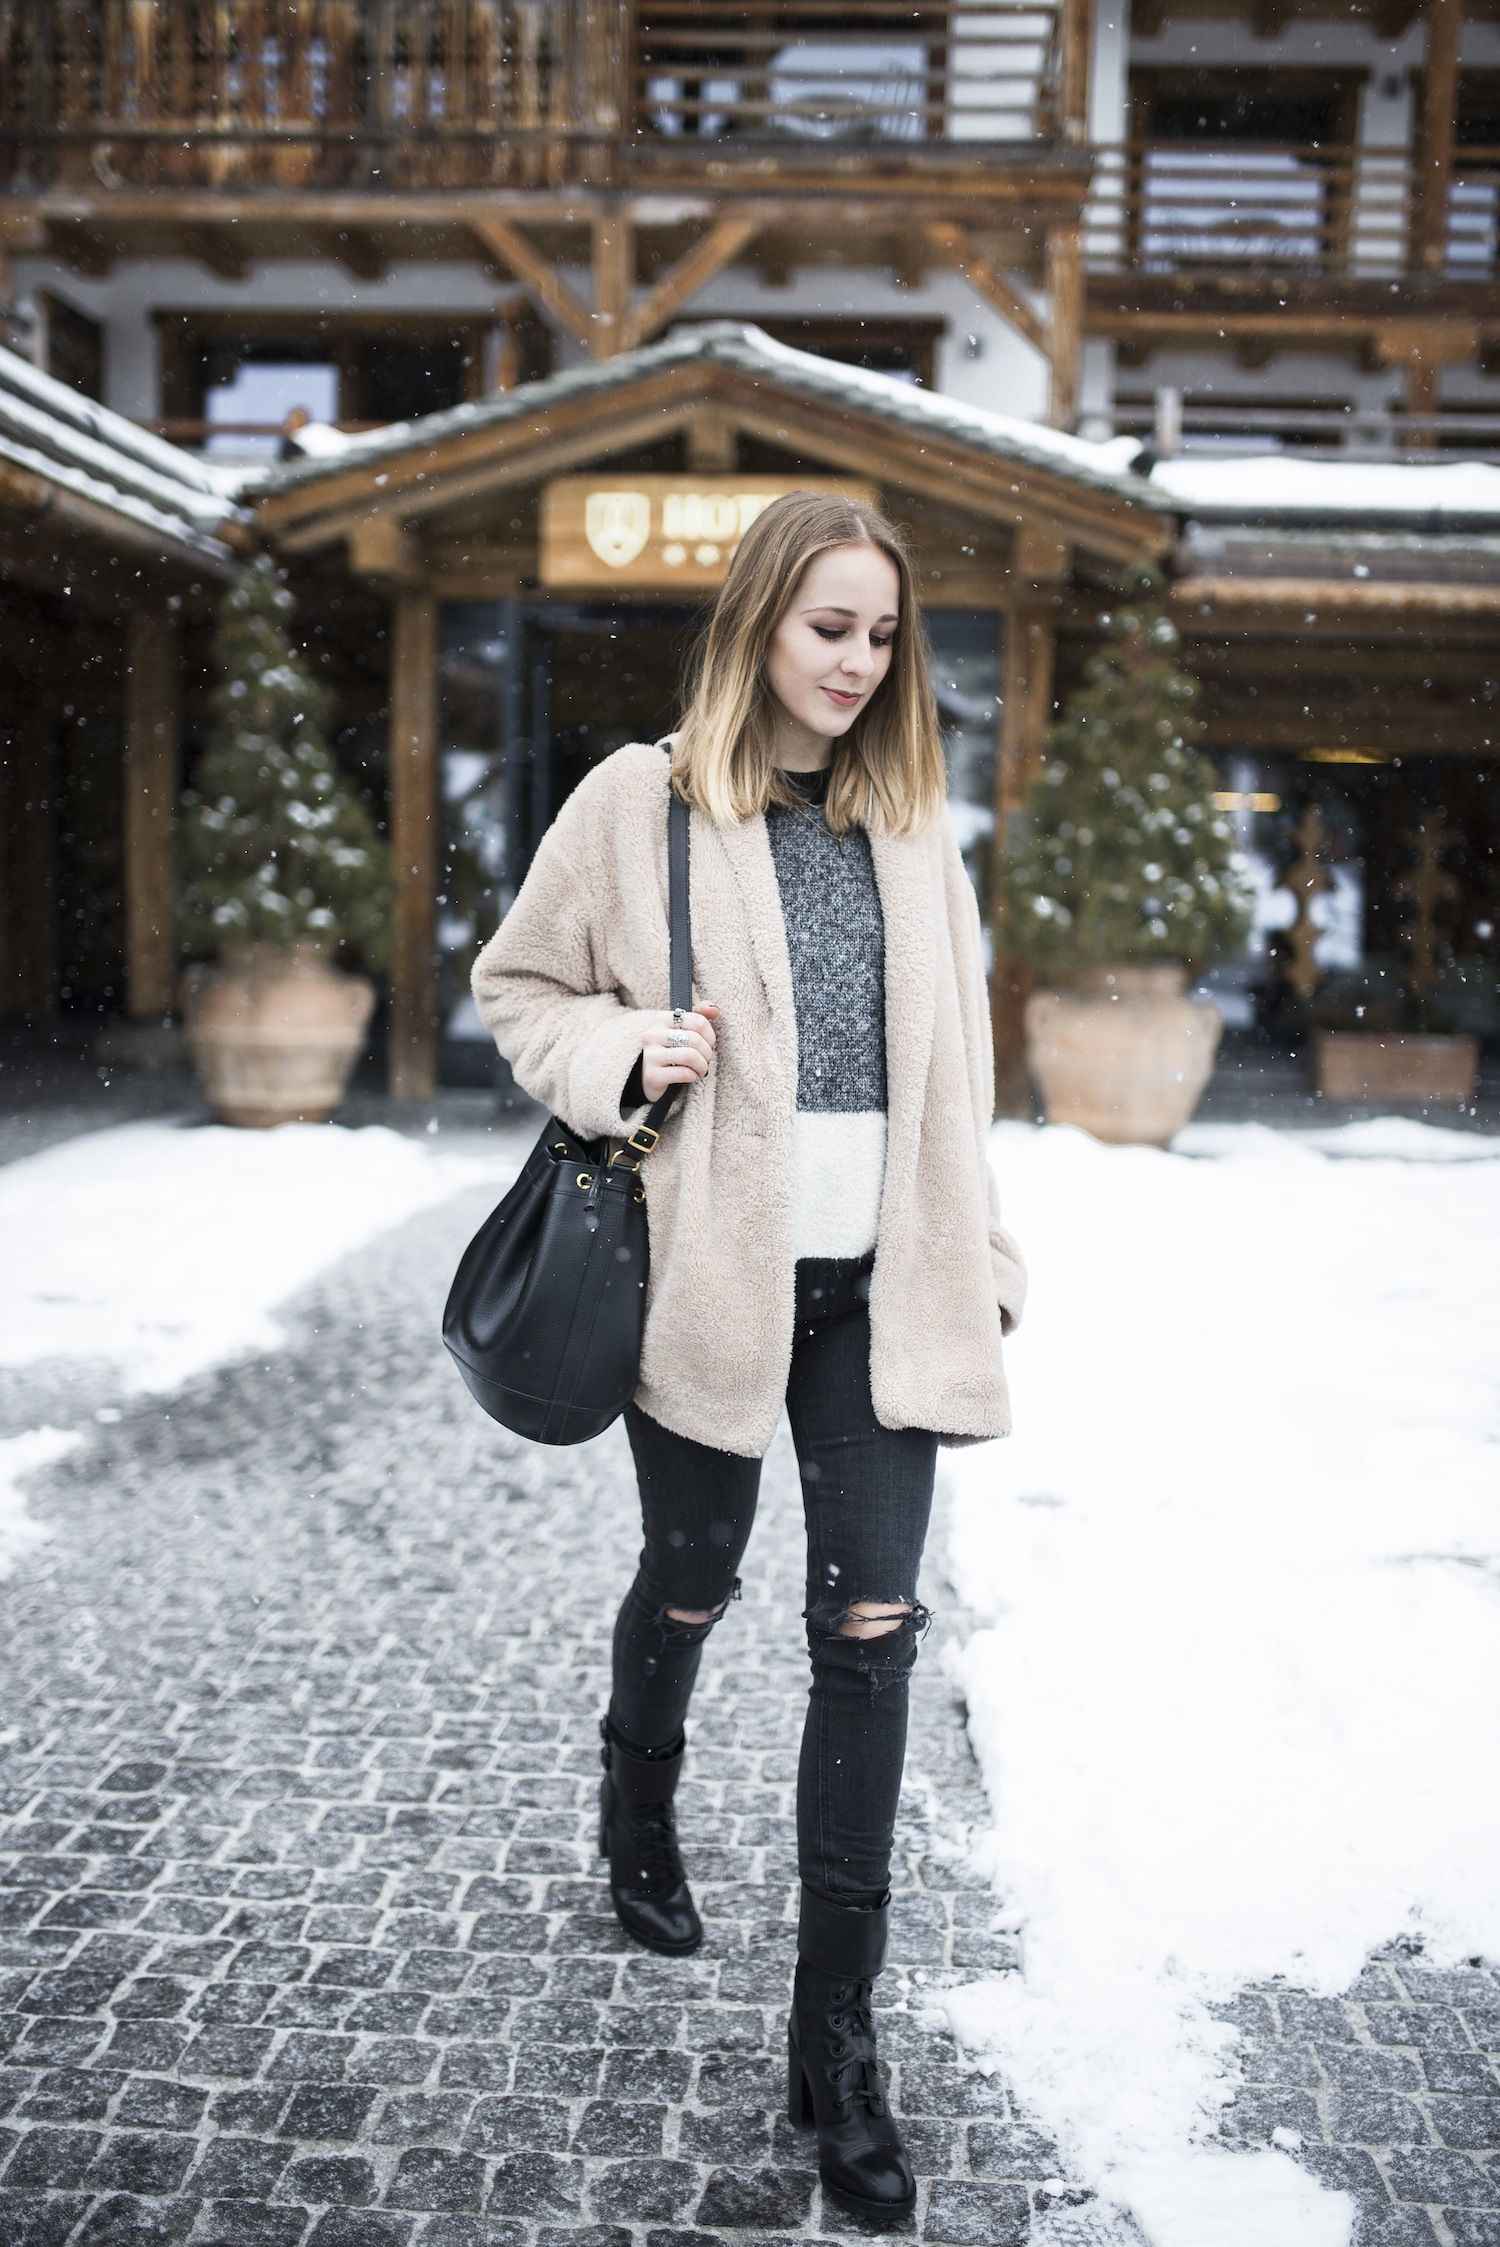 30 Ways to Look Stylish in the Dead of Winter - cropped grey sweater, ripped black skinny jeans + black ankle boots and a beige teddy coat